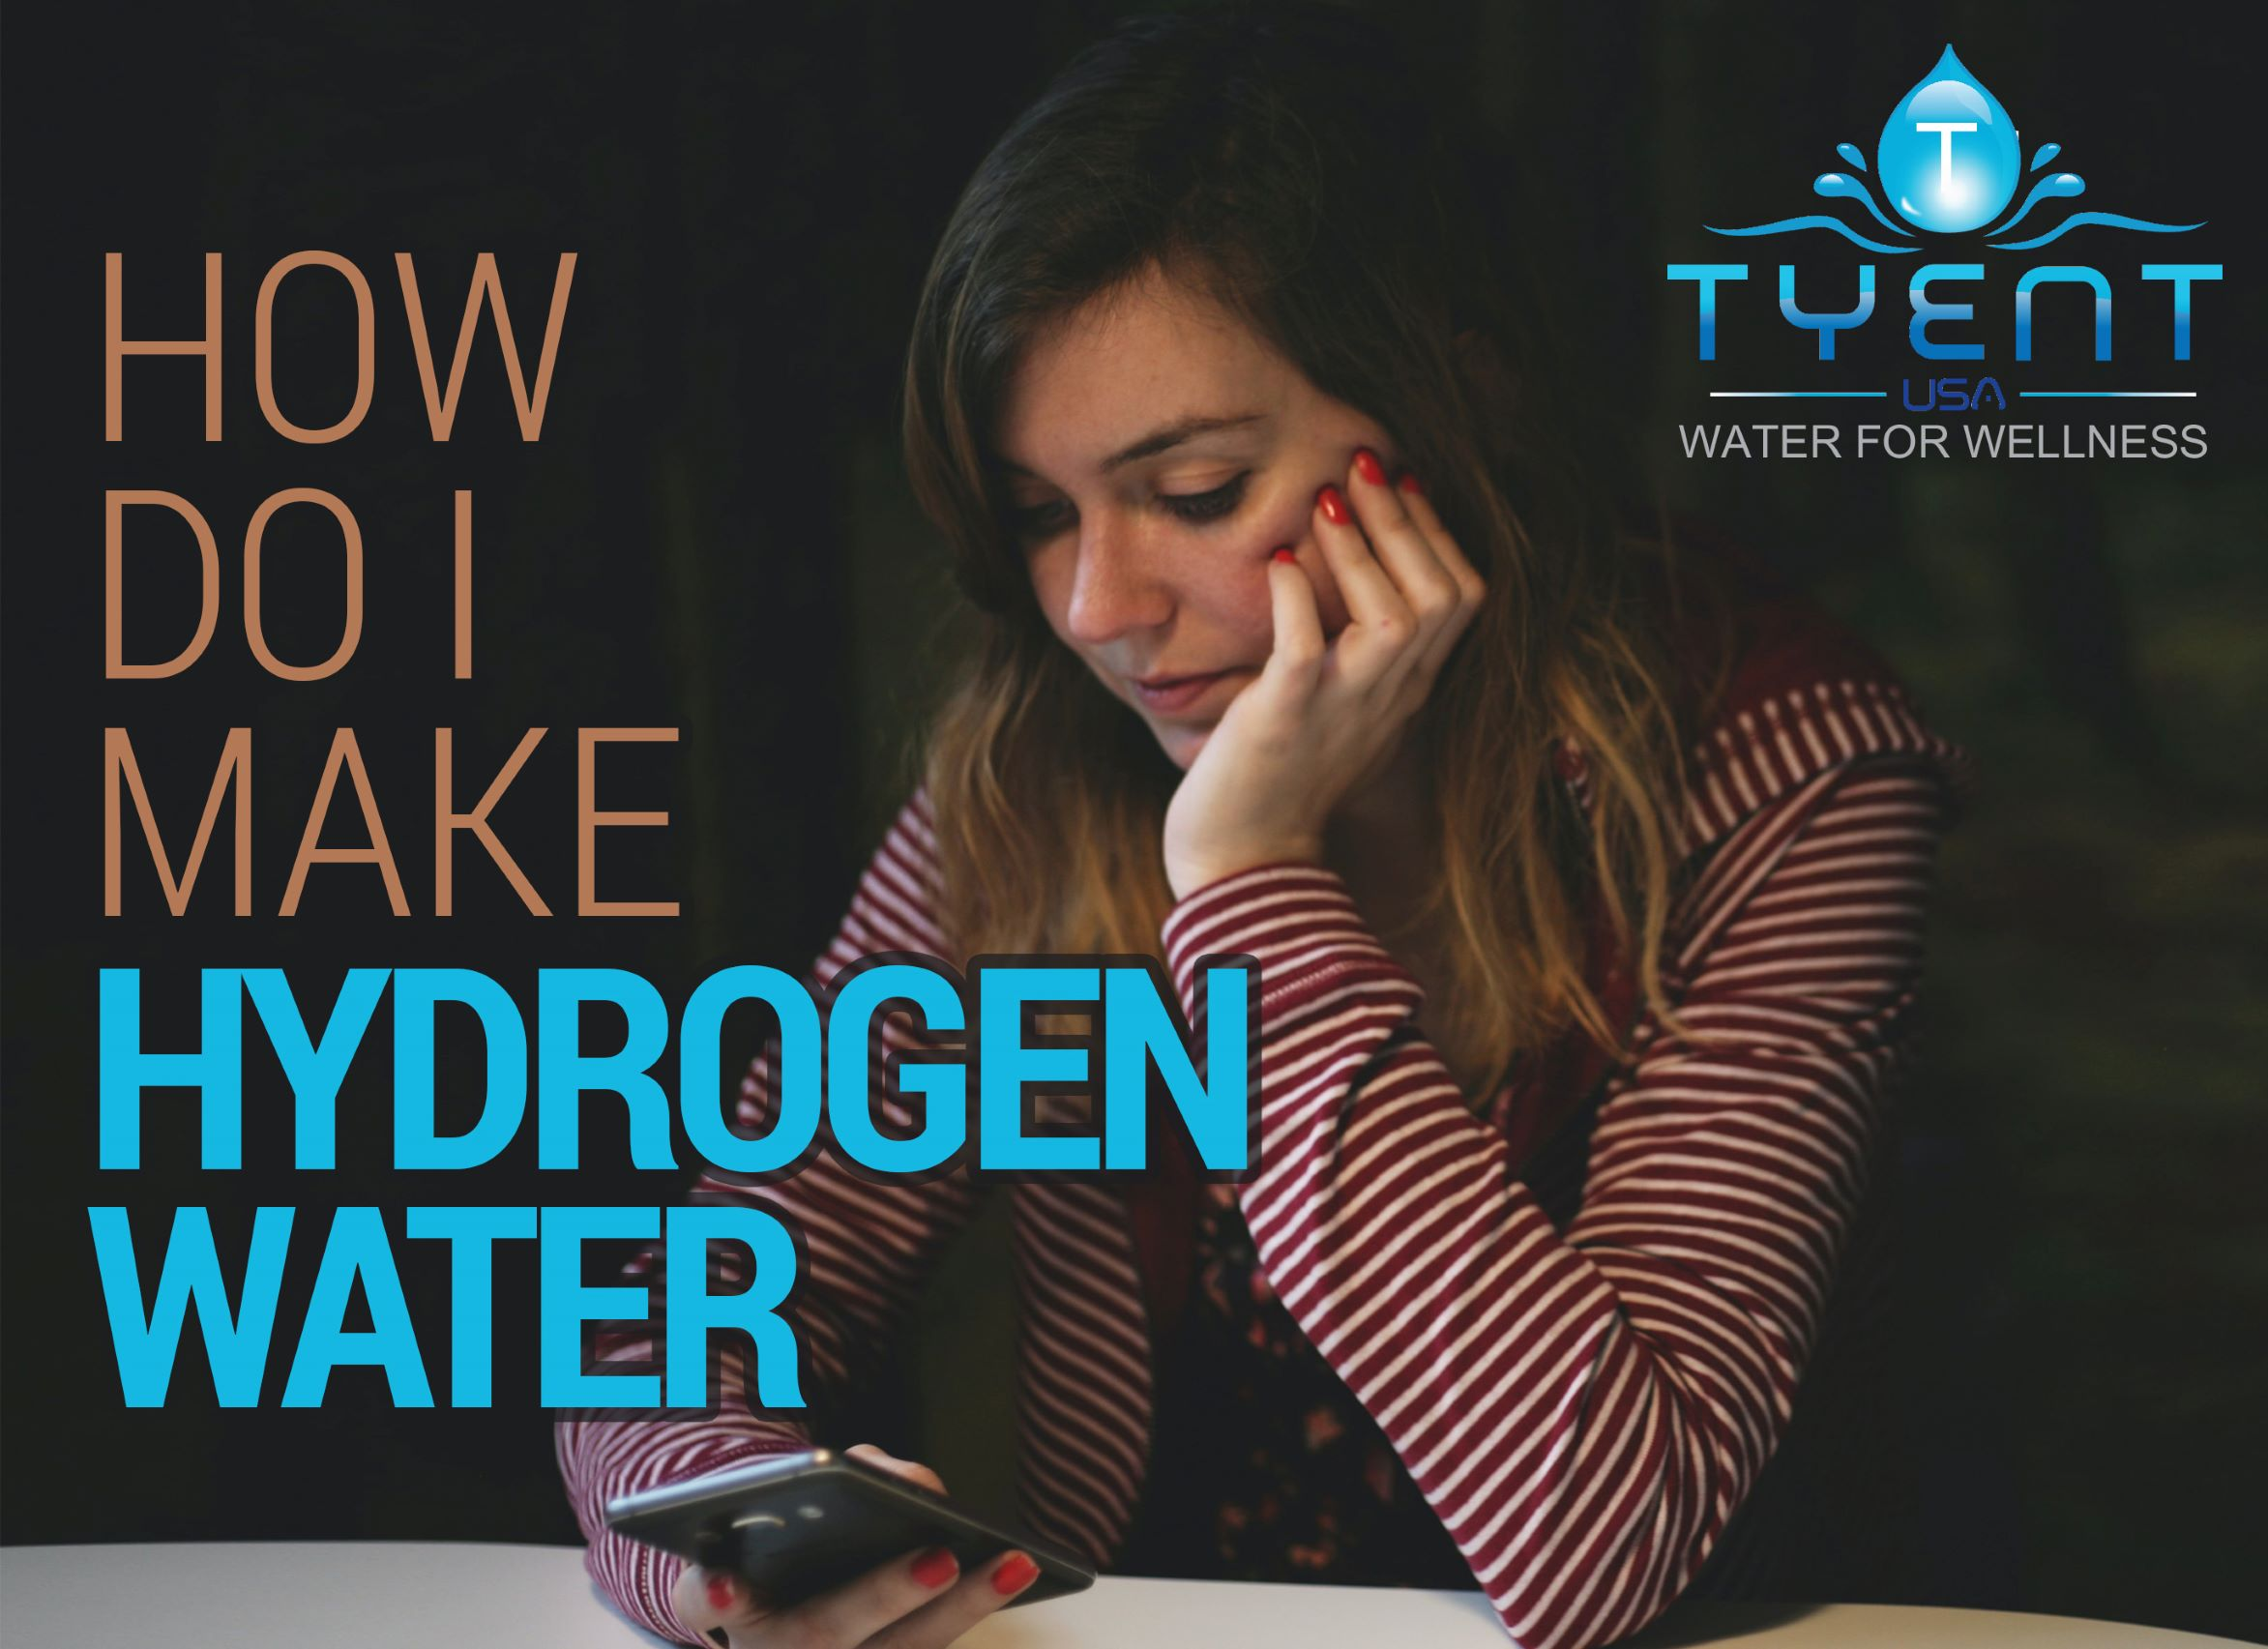 How do I make Hydrogen Water